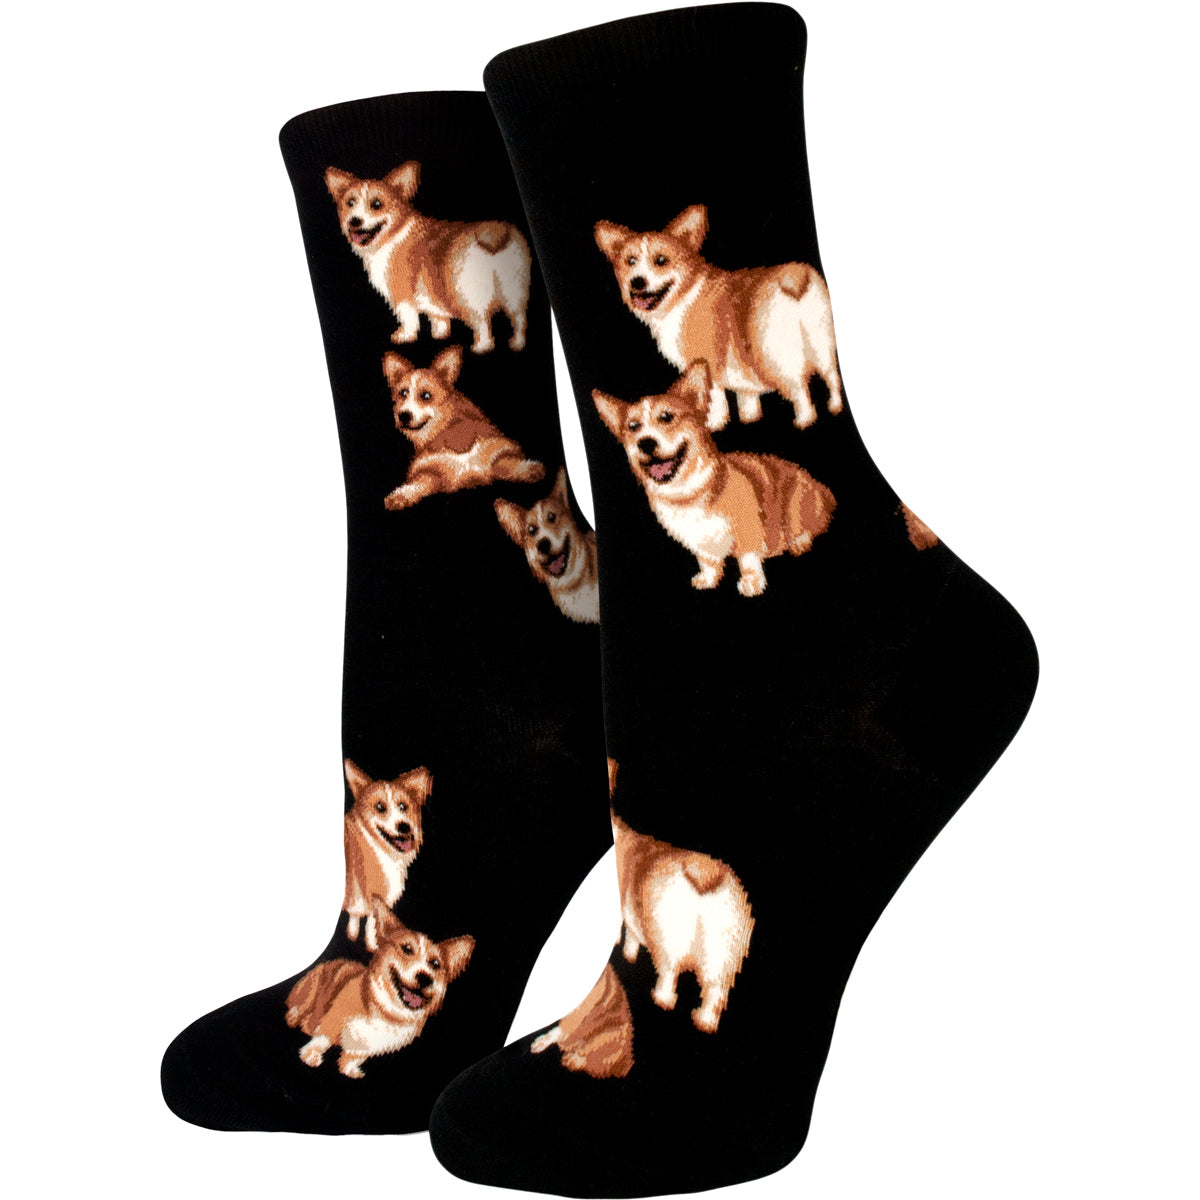 Corgi socks for dog lovers are patterned with cute corgi dogs showing their fluffy heart-shaped butts on a black background and are part of our Dog Socks collection.